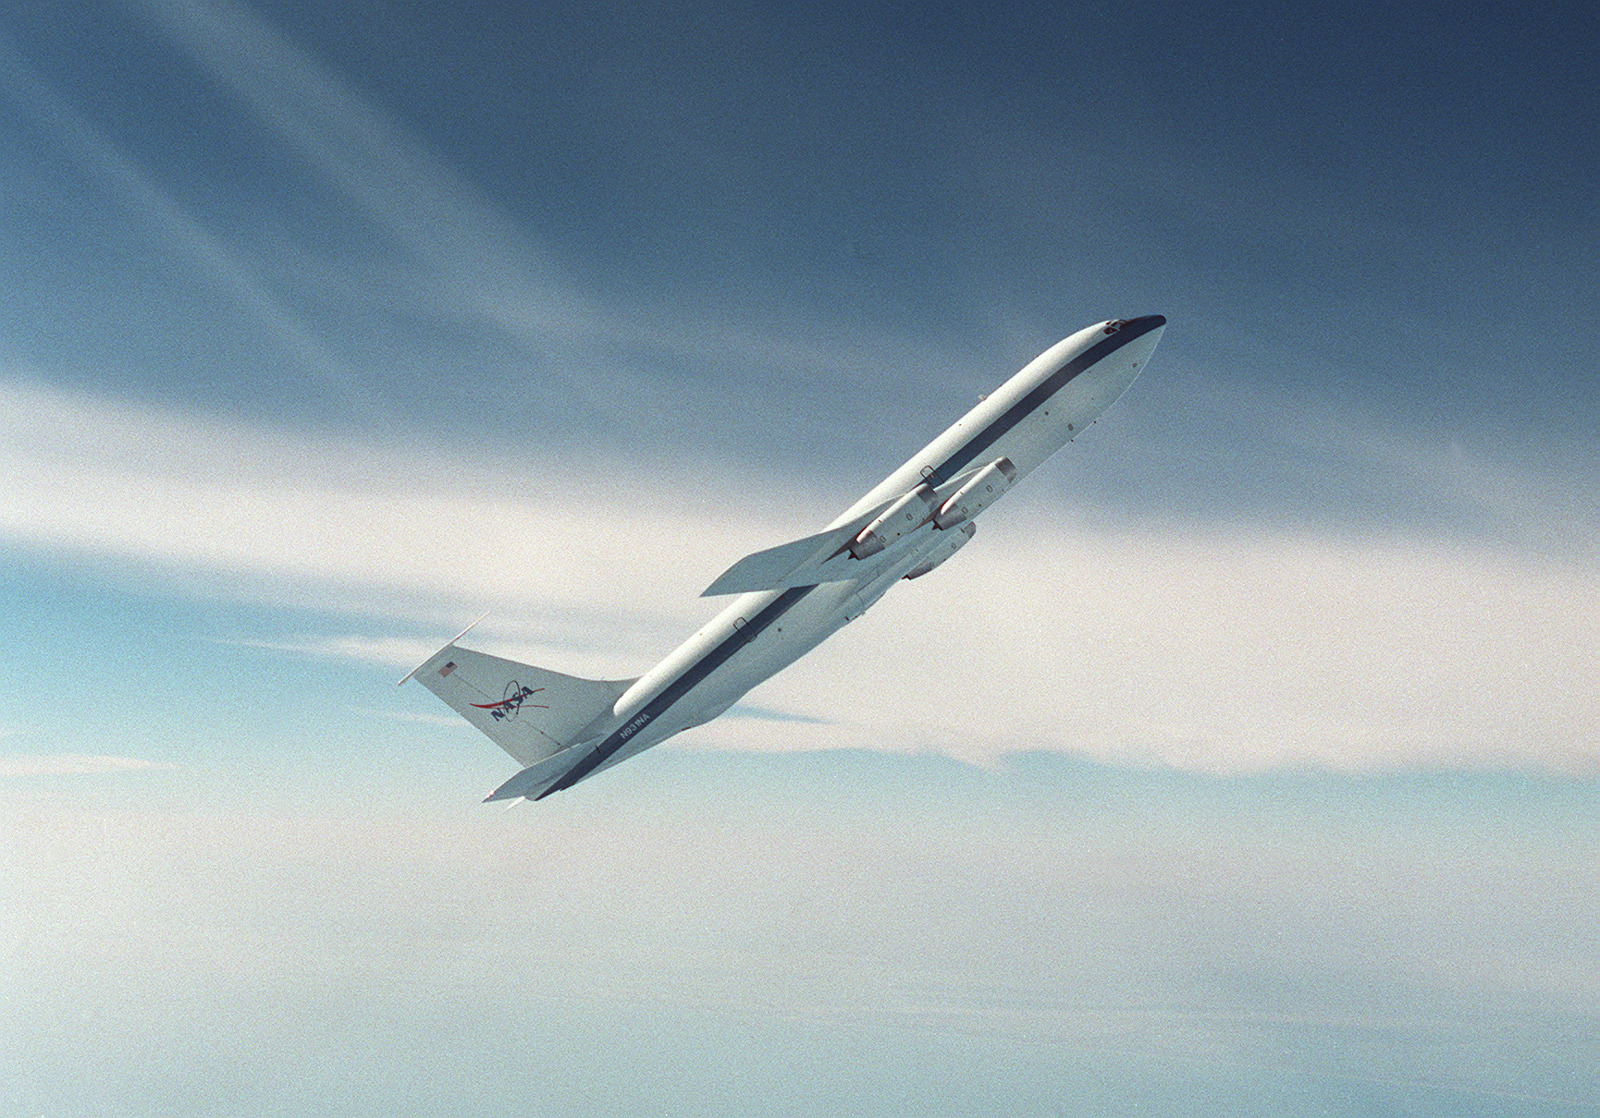 NASA's KC-135A in parabolic flight (image credit NASA).